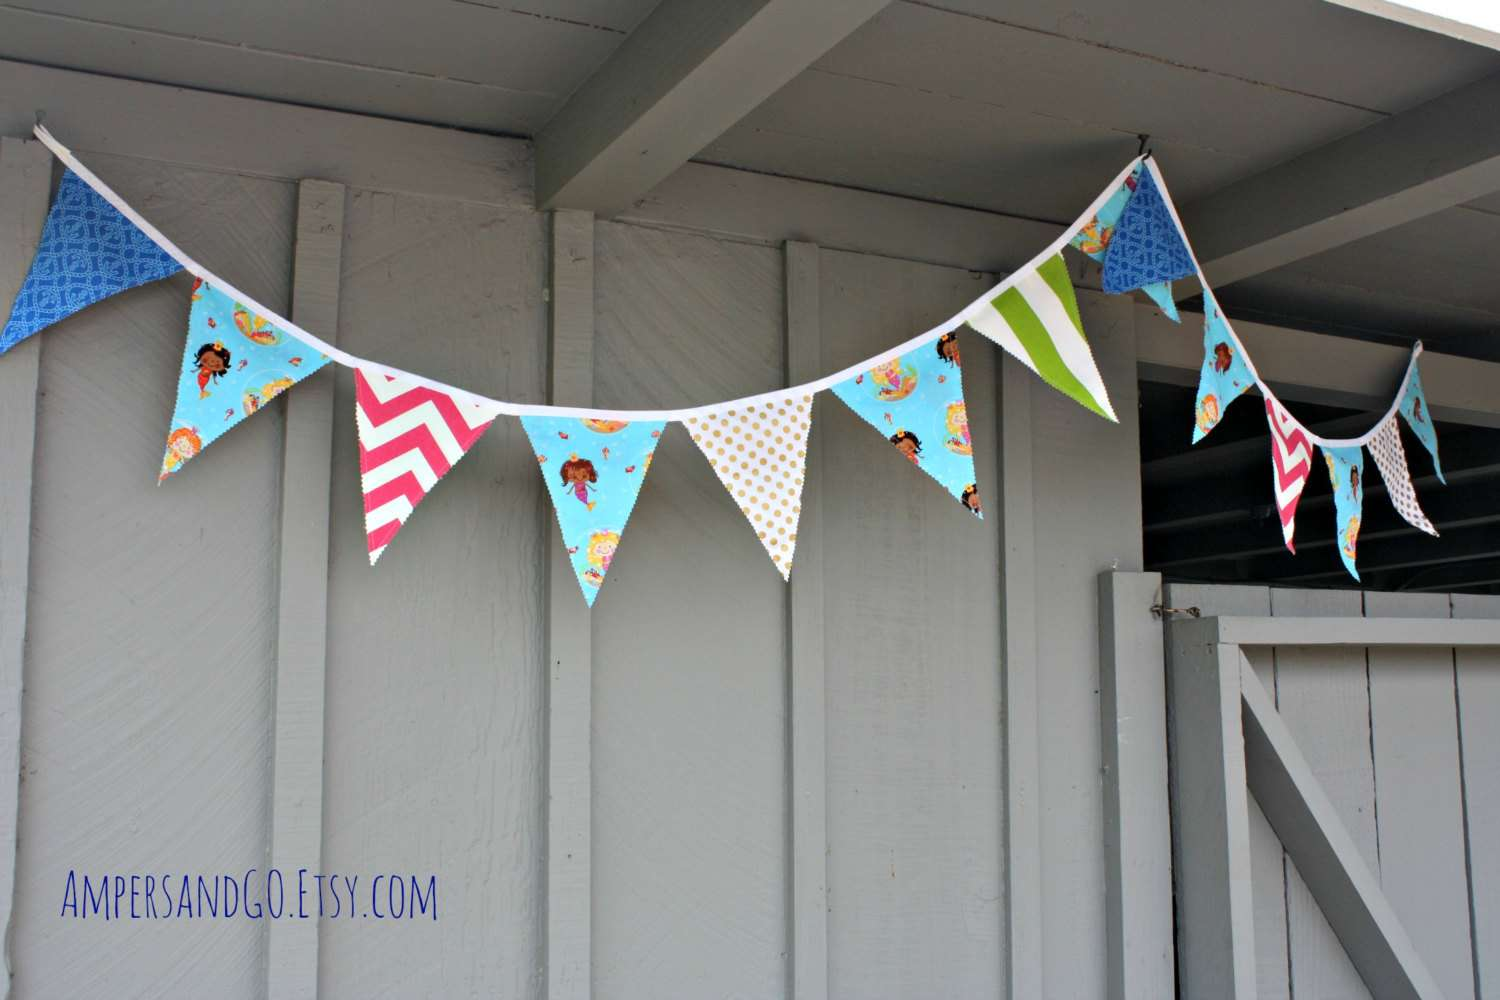 Nautical Mermaid Bunting Fabric Banner Flags Ampersandgo